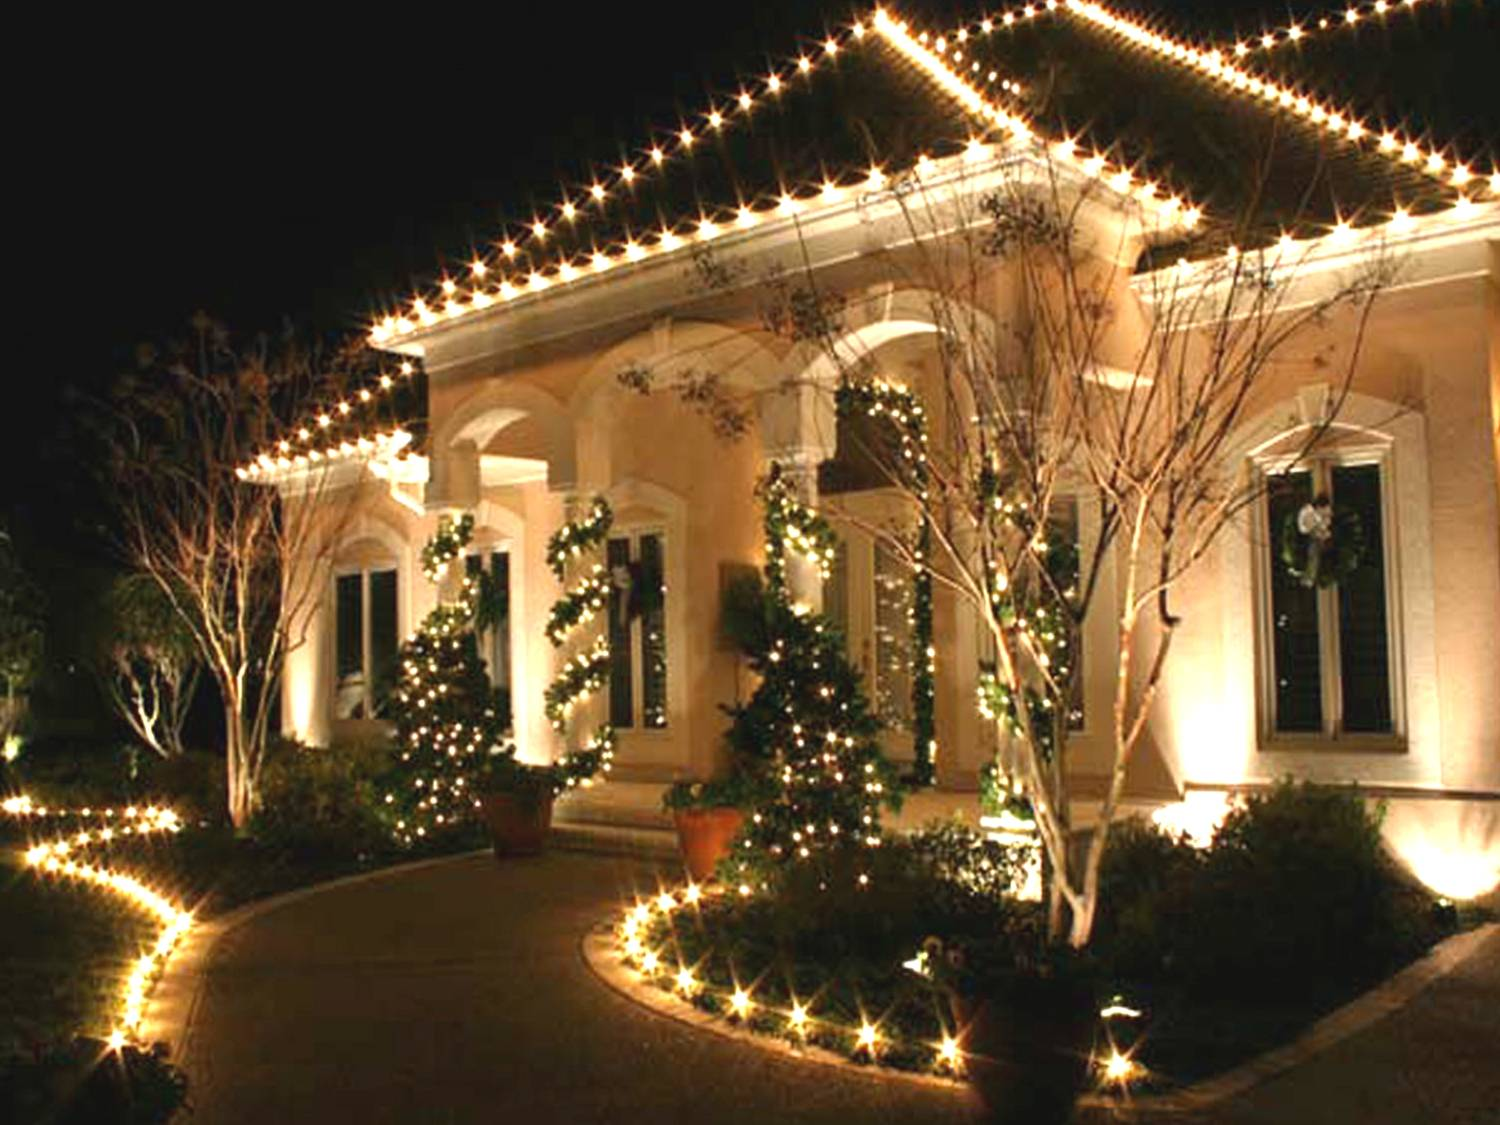 Swingle CEO: July Increase In Christmas Lighting And